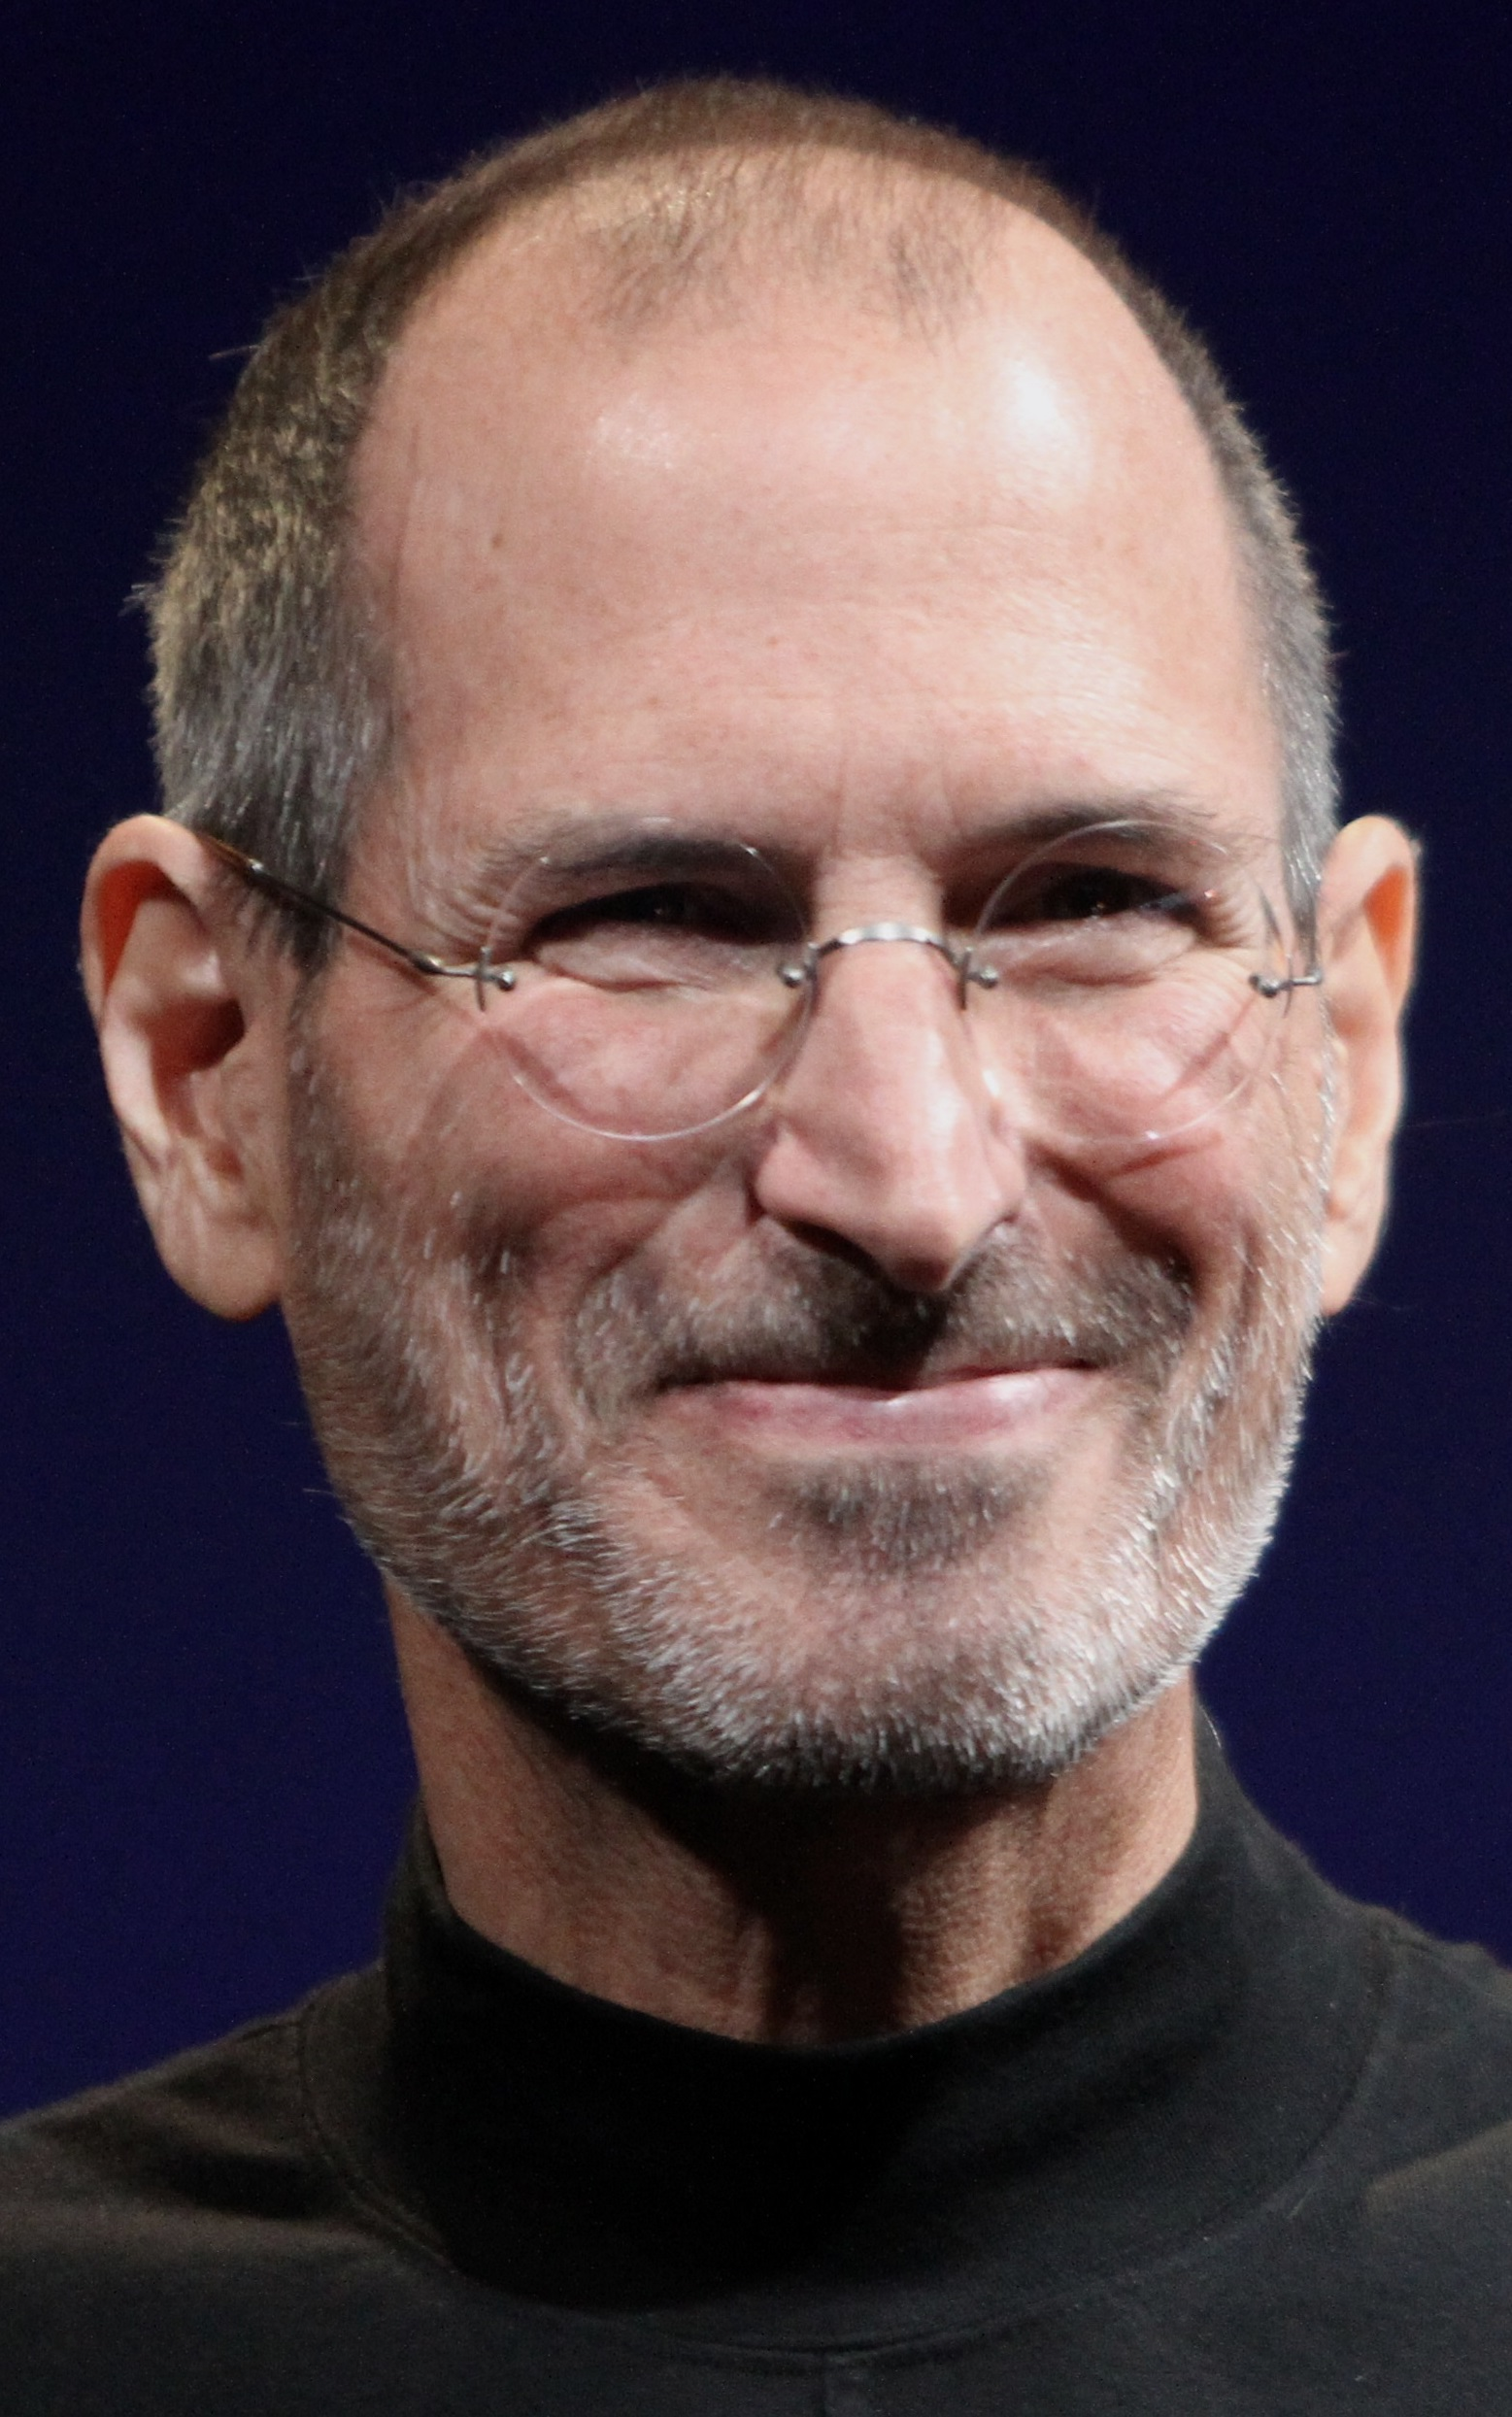 [Image: Steve_Jobs_Headshot_2010-CROP2.jpg]